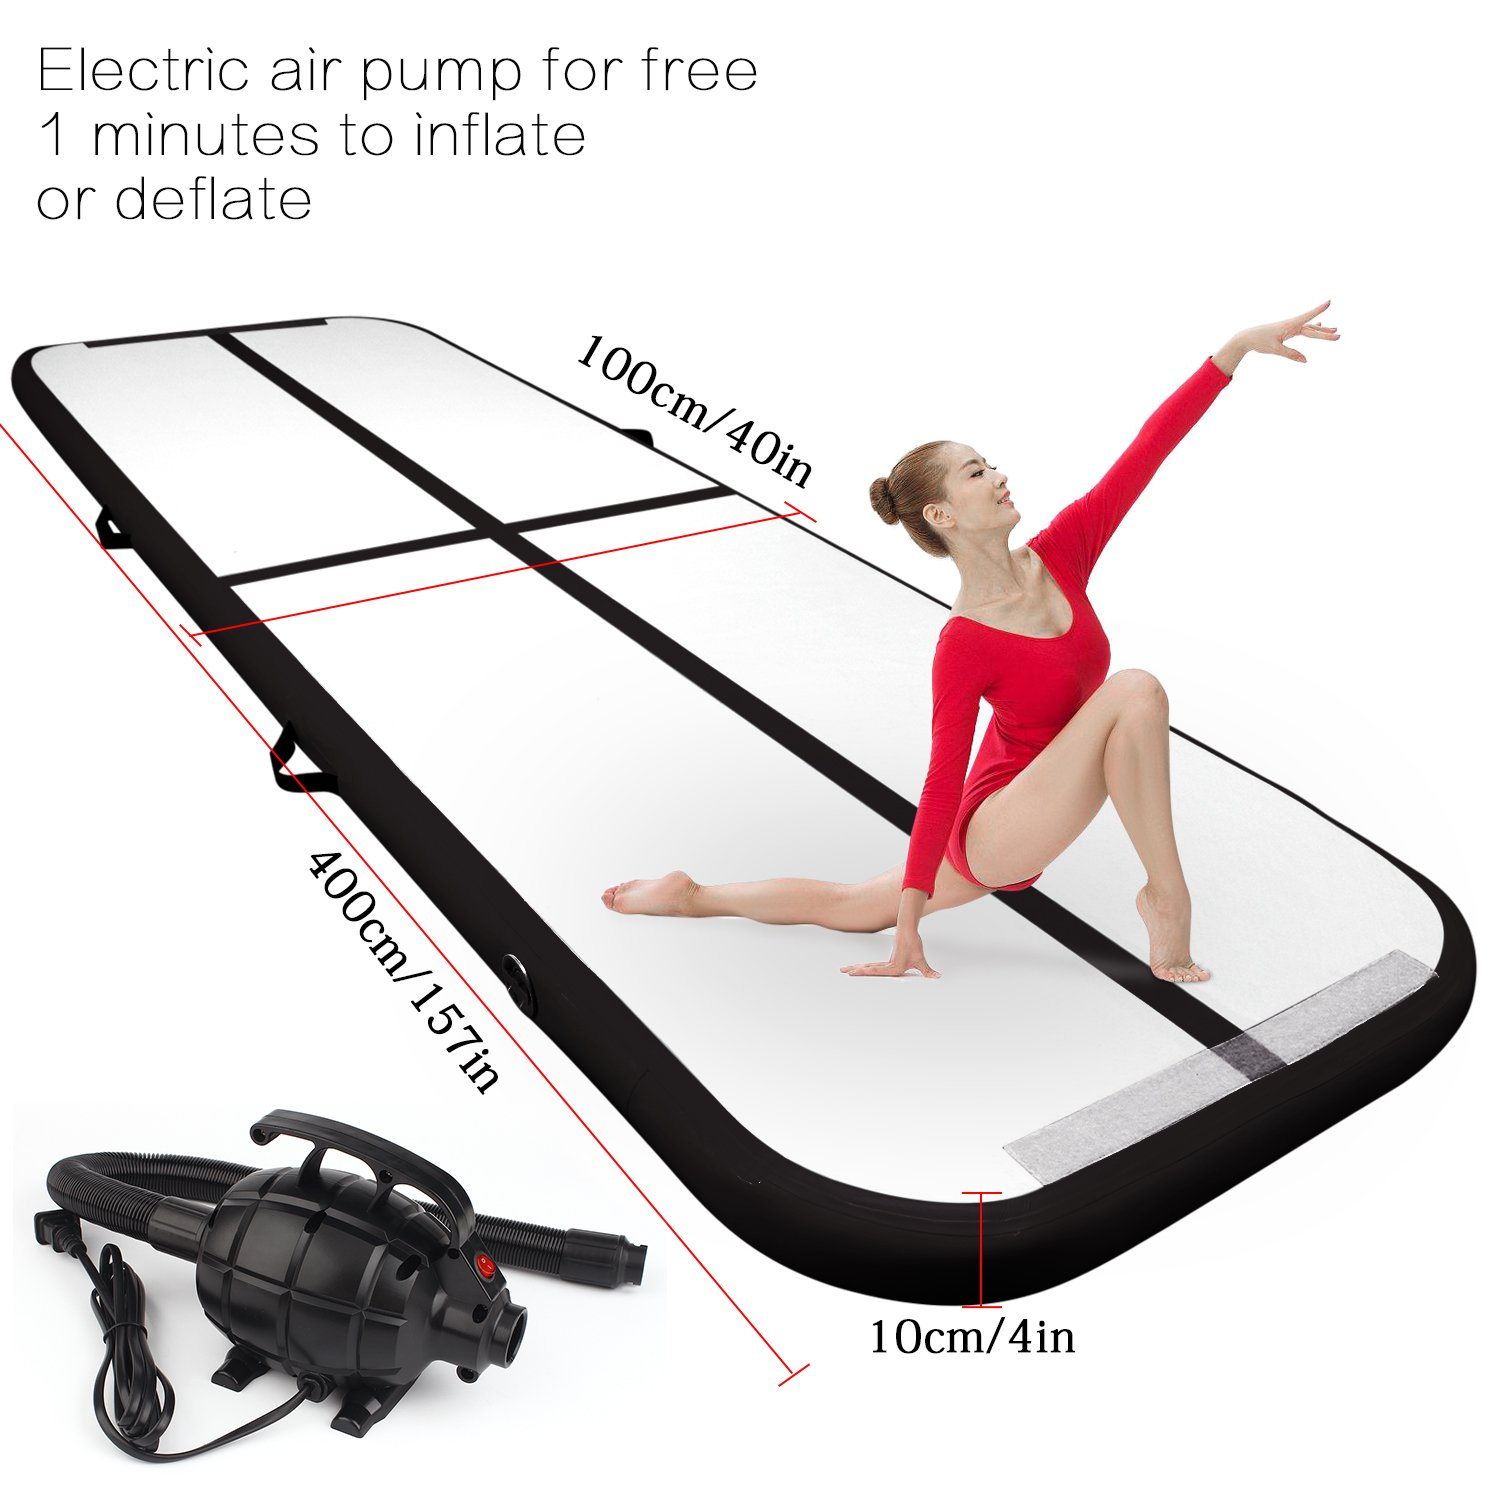 FBSPORT 13.12ft air Track Tumbling mat Inflatable Gymnastics airtrack with Electric Air Pump for Practice Gymnastics, Tumbling,Parkour, Home Floor